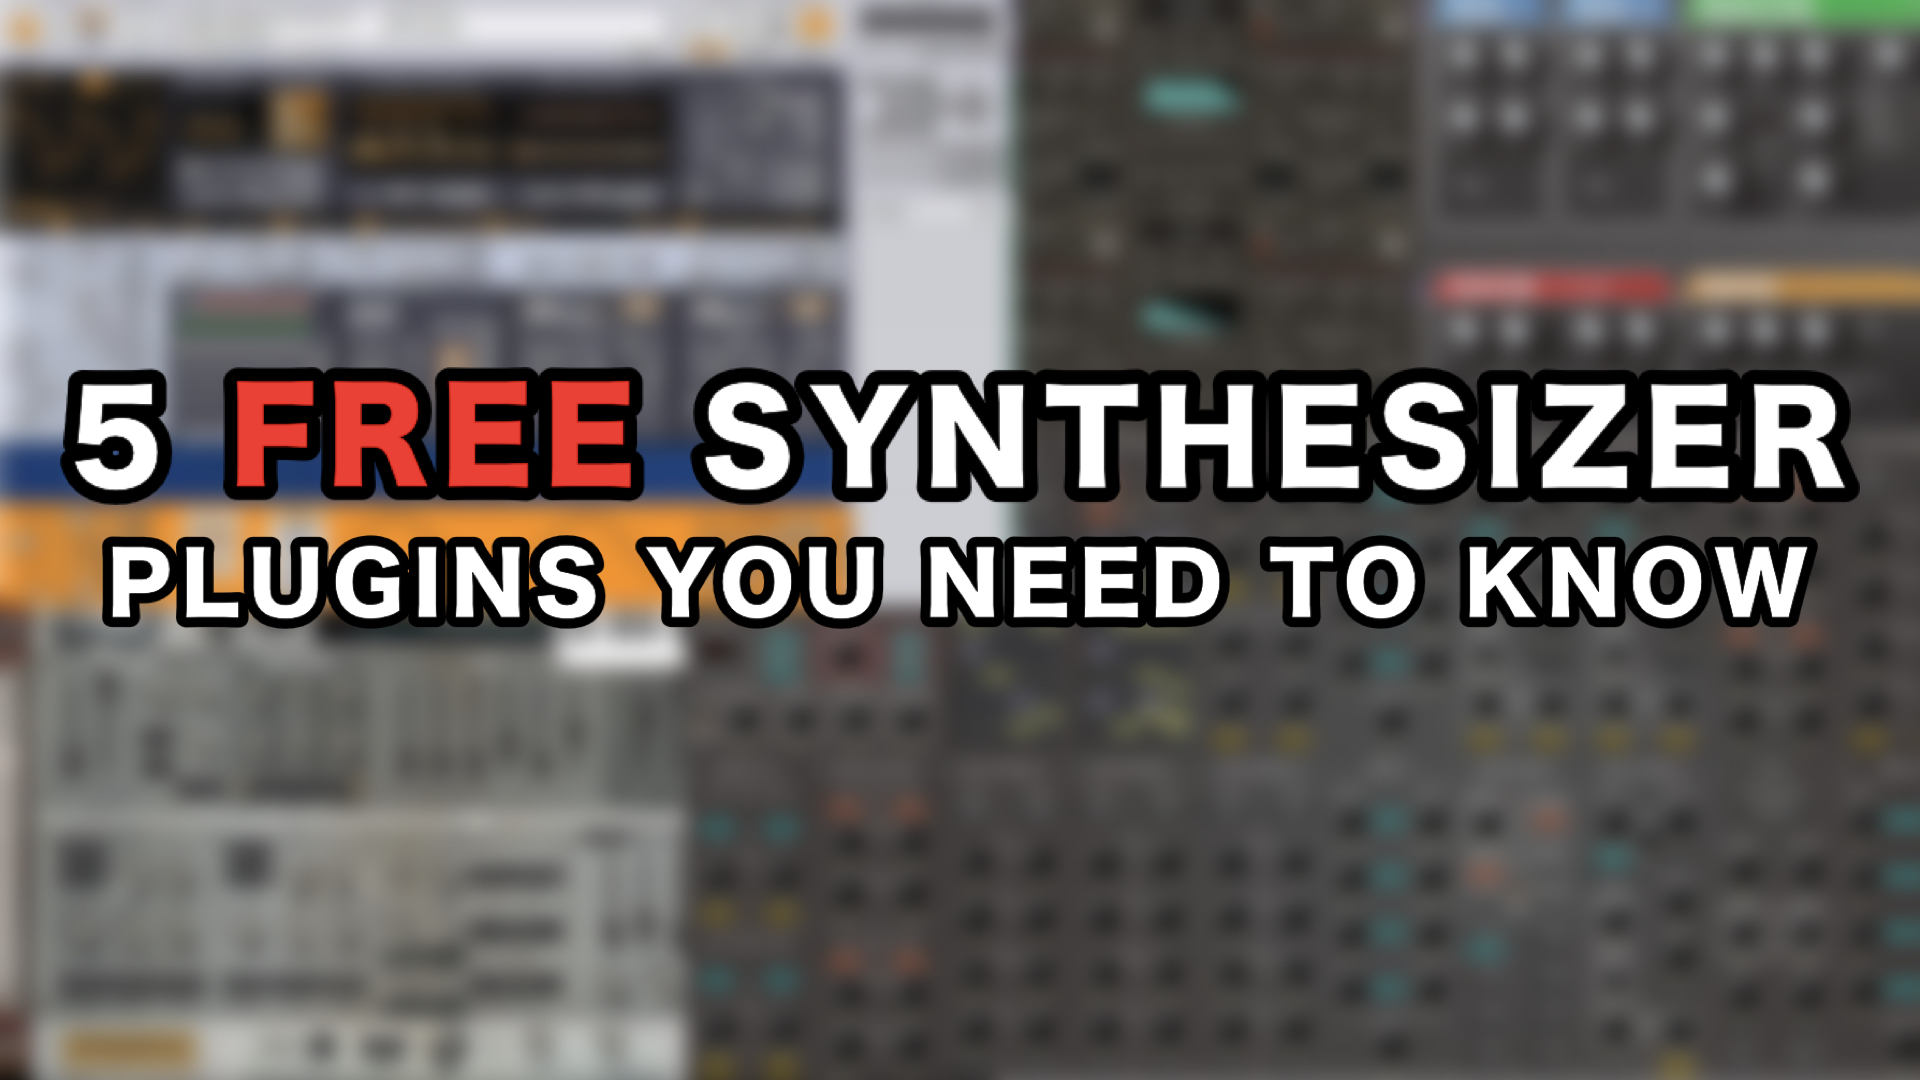 Best 5 Free Synthesizer Plugins For PC & Mac You Need To Know